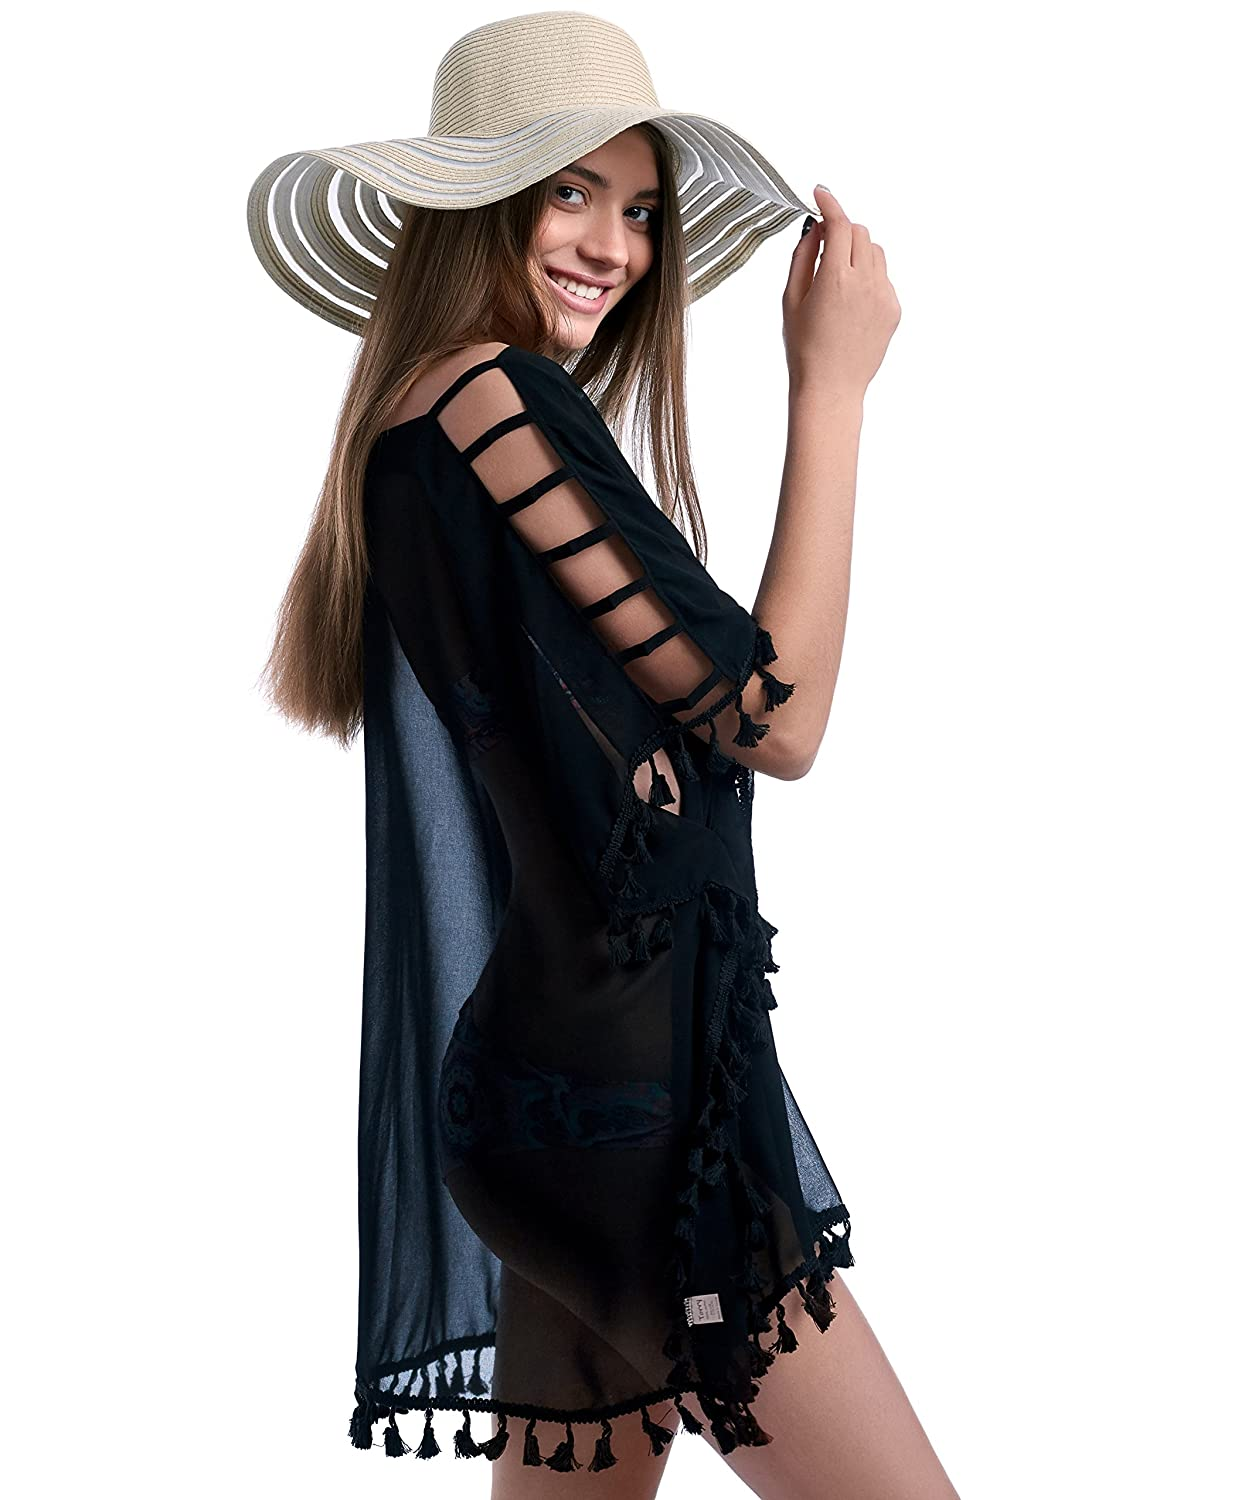 0e3e442e3726 ... and summer dresses being too tight or too restrictive . Feel free as a  bird and enjoy your summer holidays like you should. Our swimsuit cover up  ...